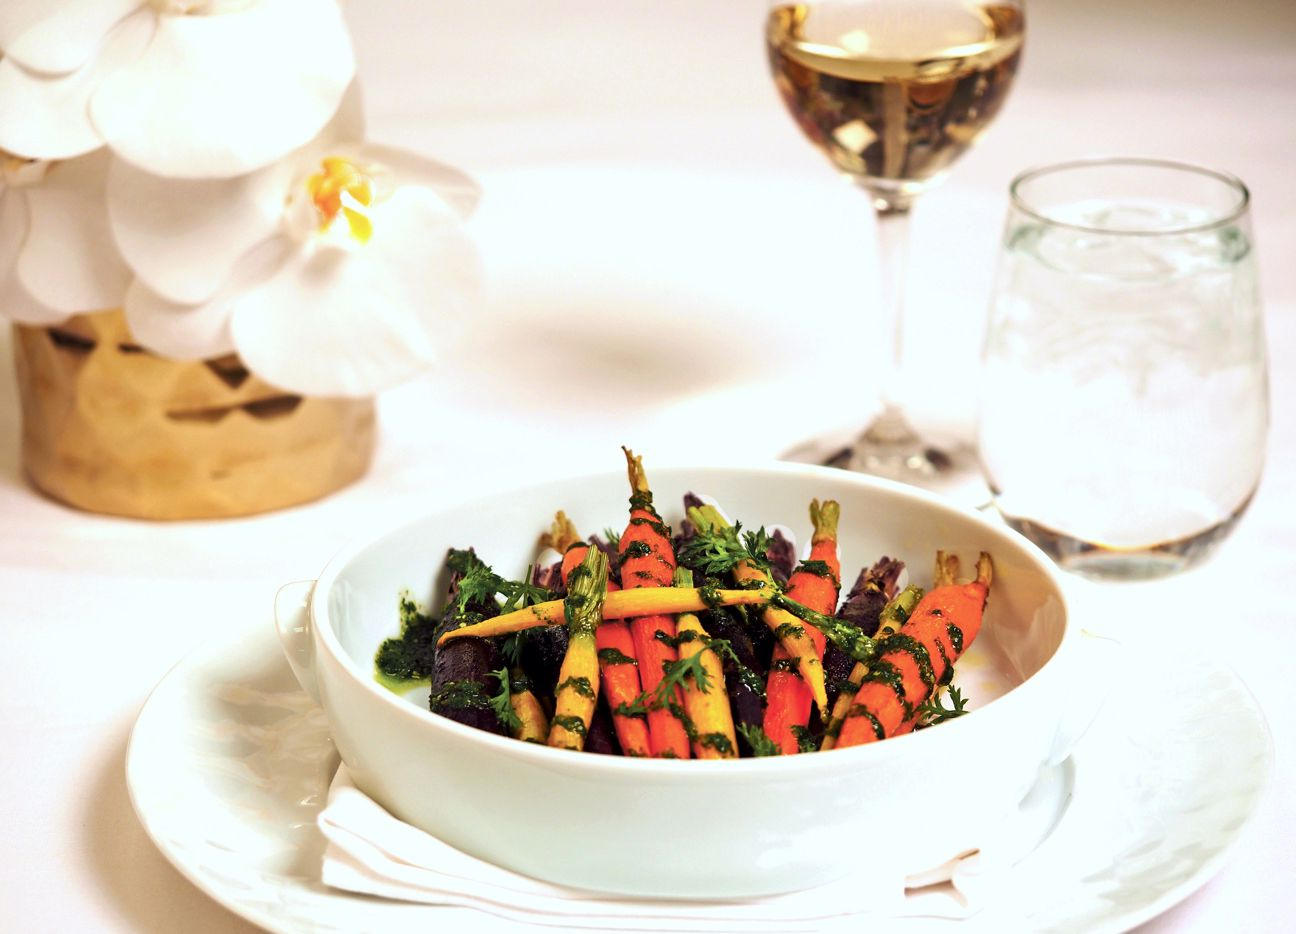 Roasted Thumbelina Carrots with Carrot Top Pesto from chef Kelly Bianchi at Wynn Las Vegas